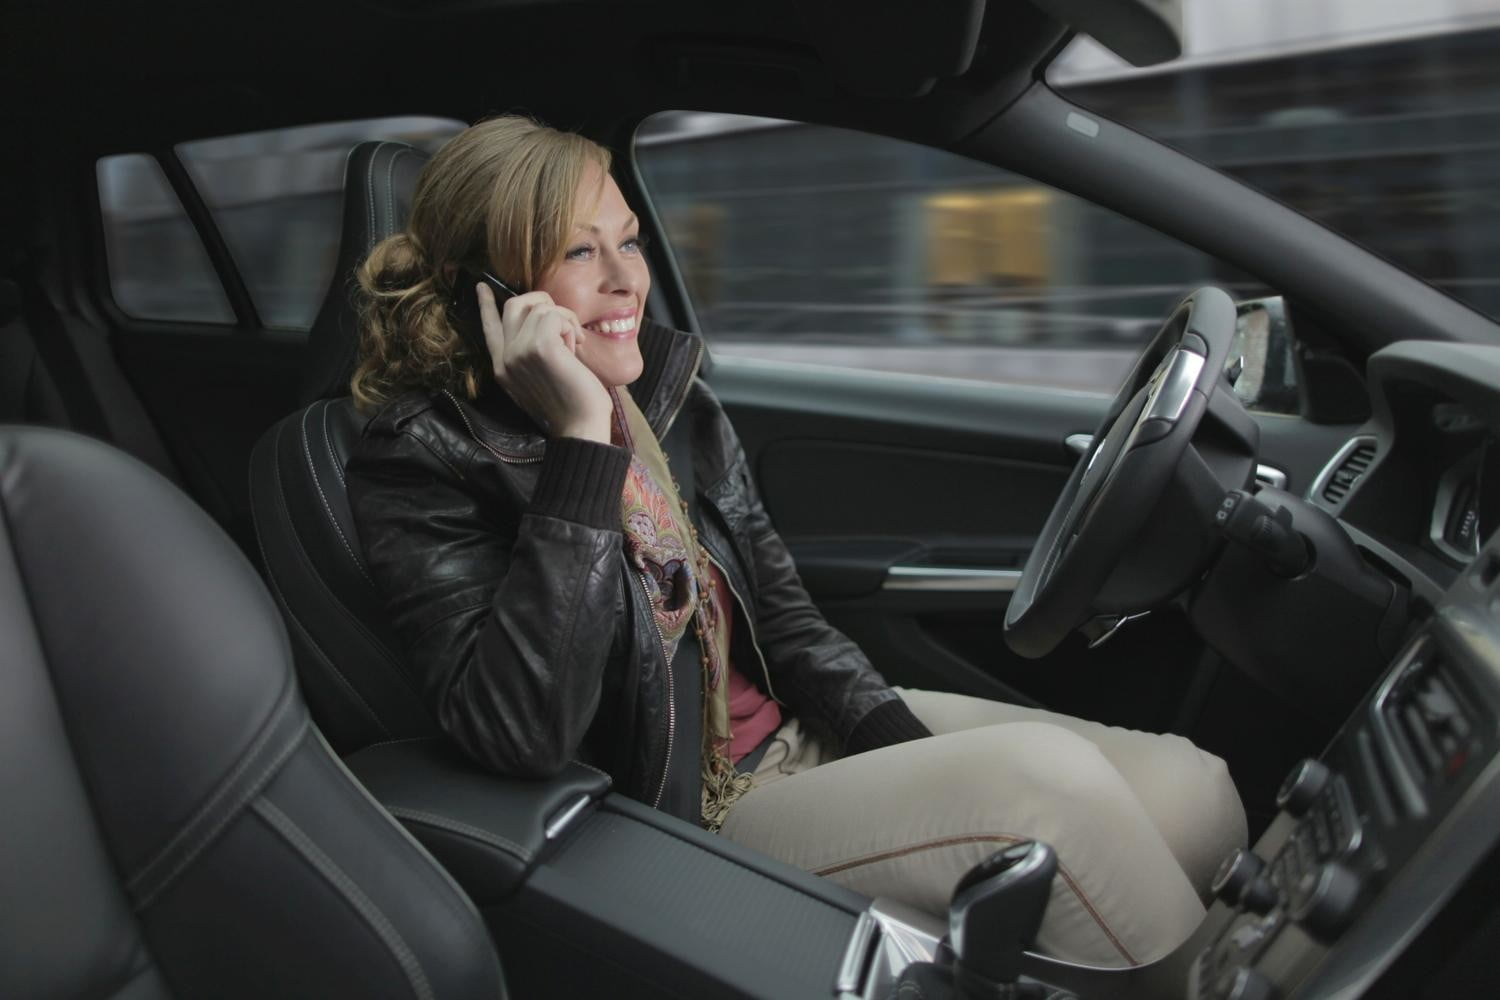 Volvo Drive Me self-driving car program